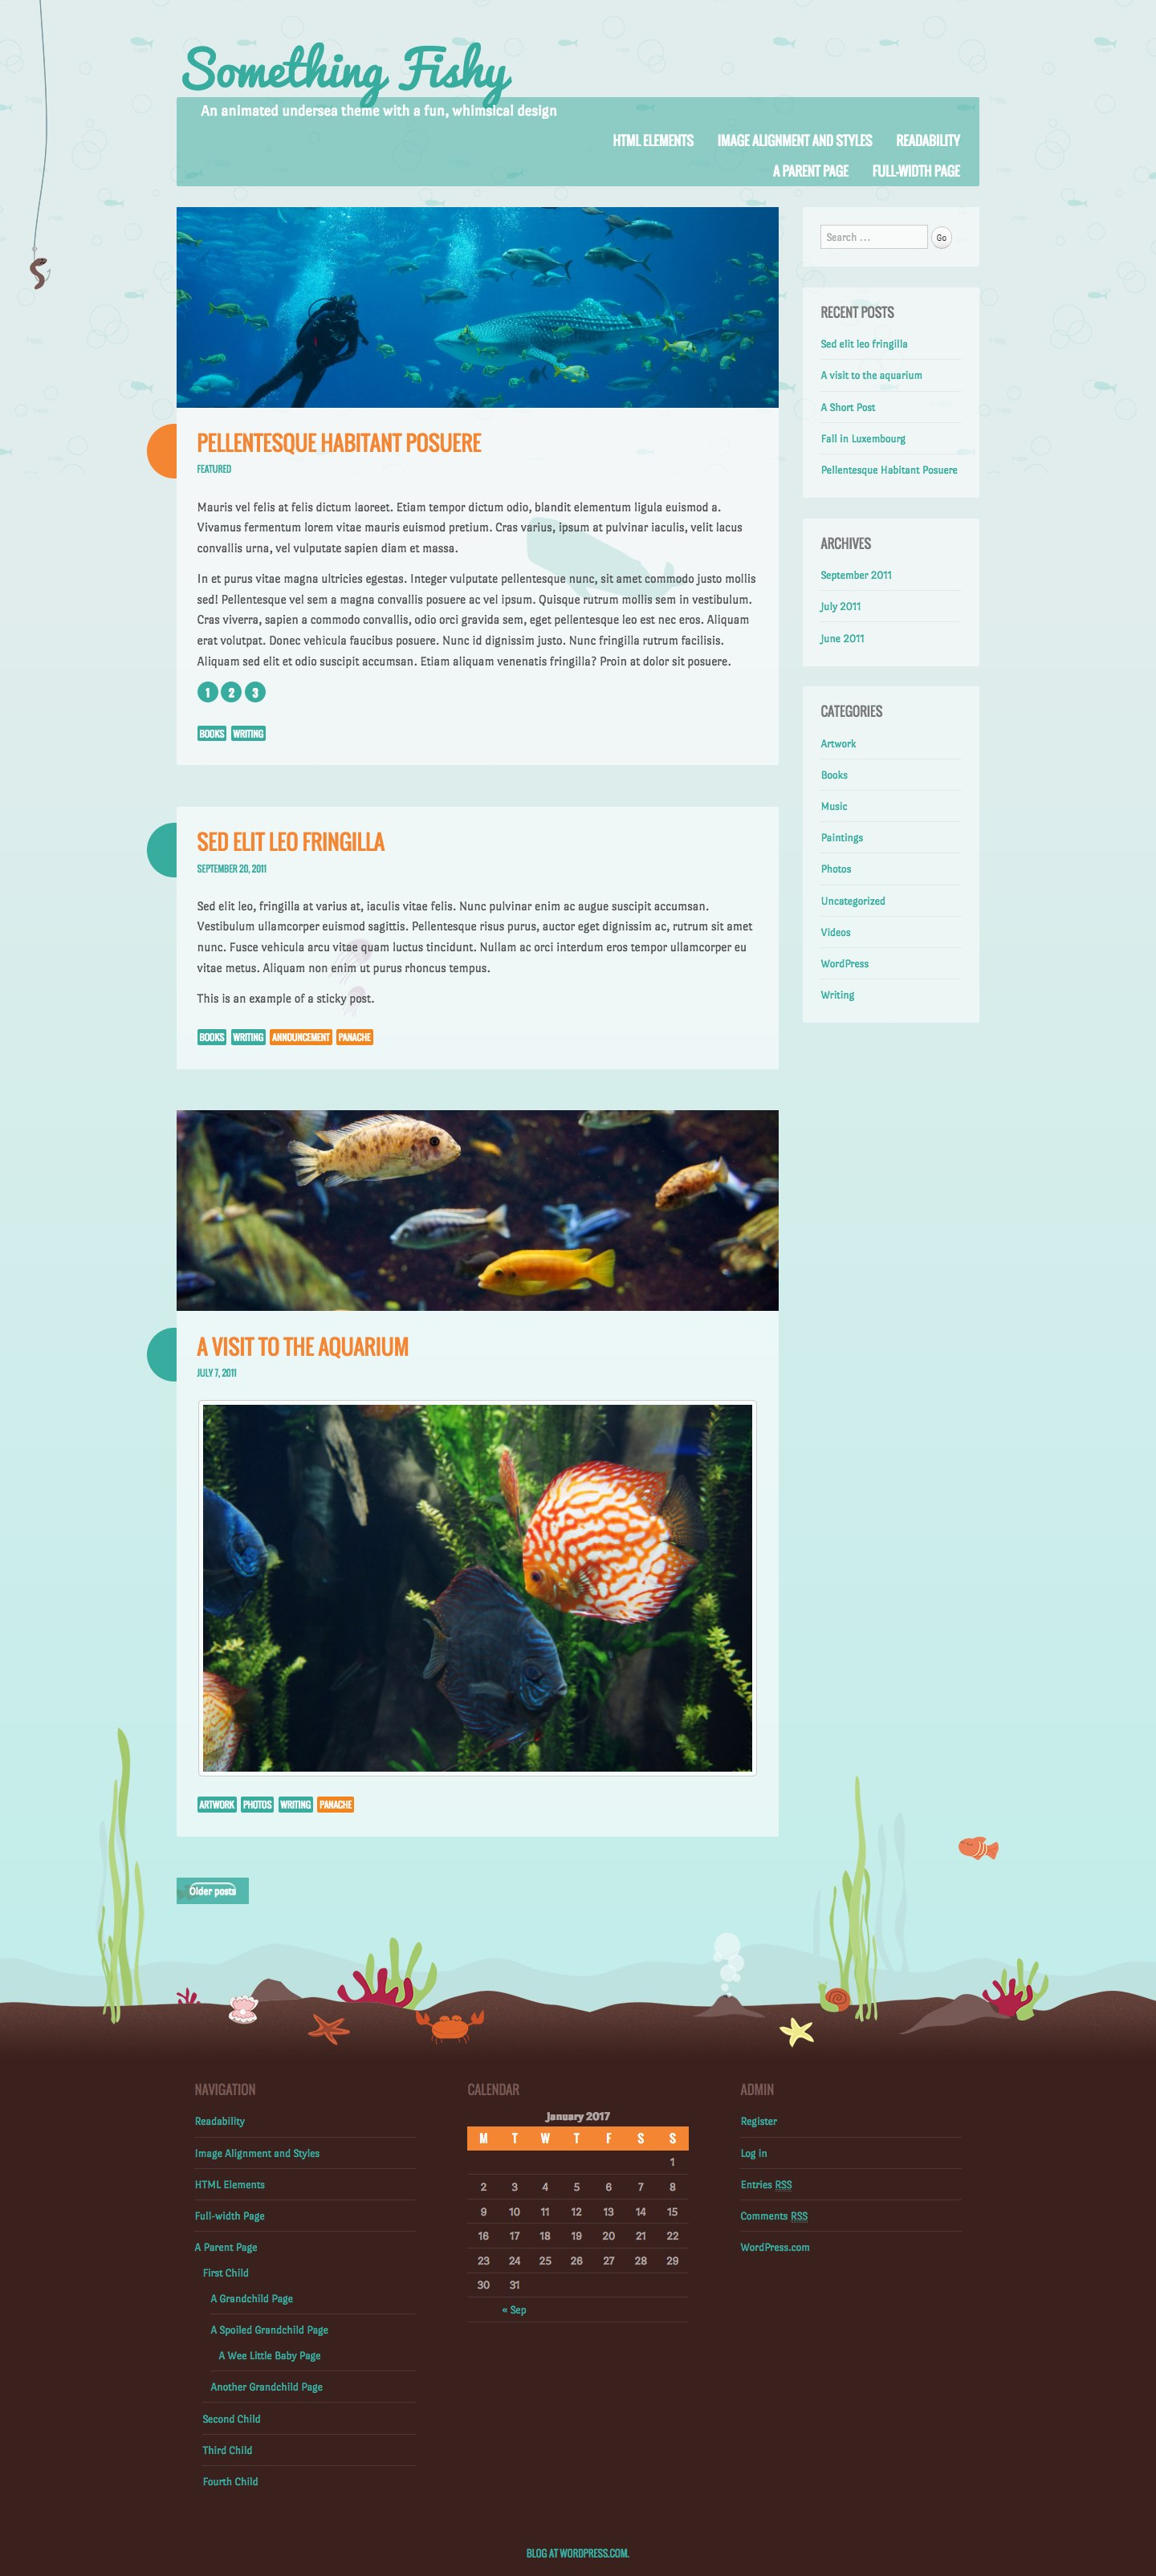 Screenshot of the Something Fishy theme